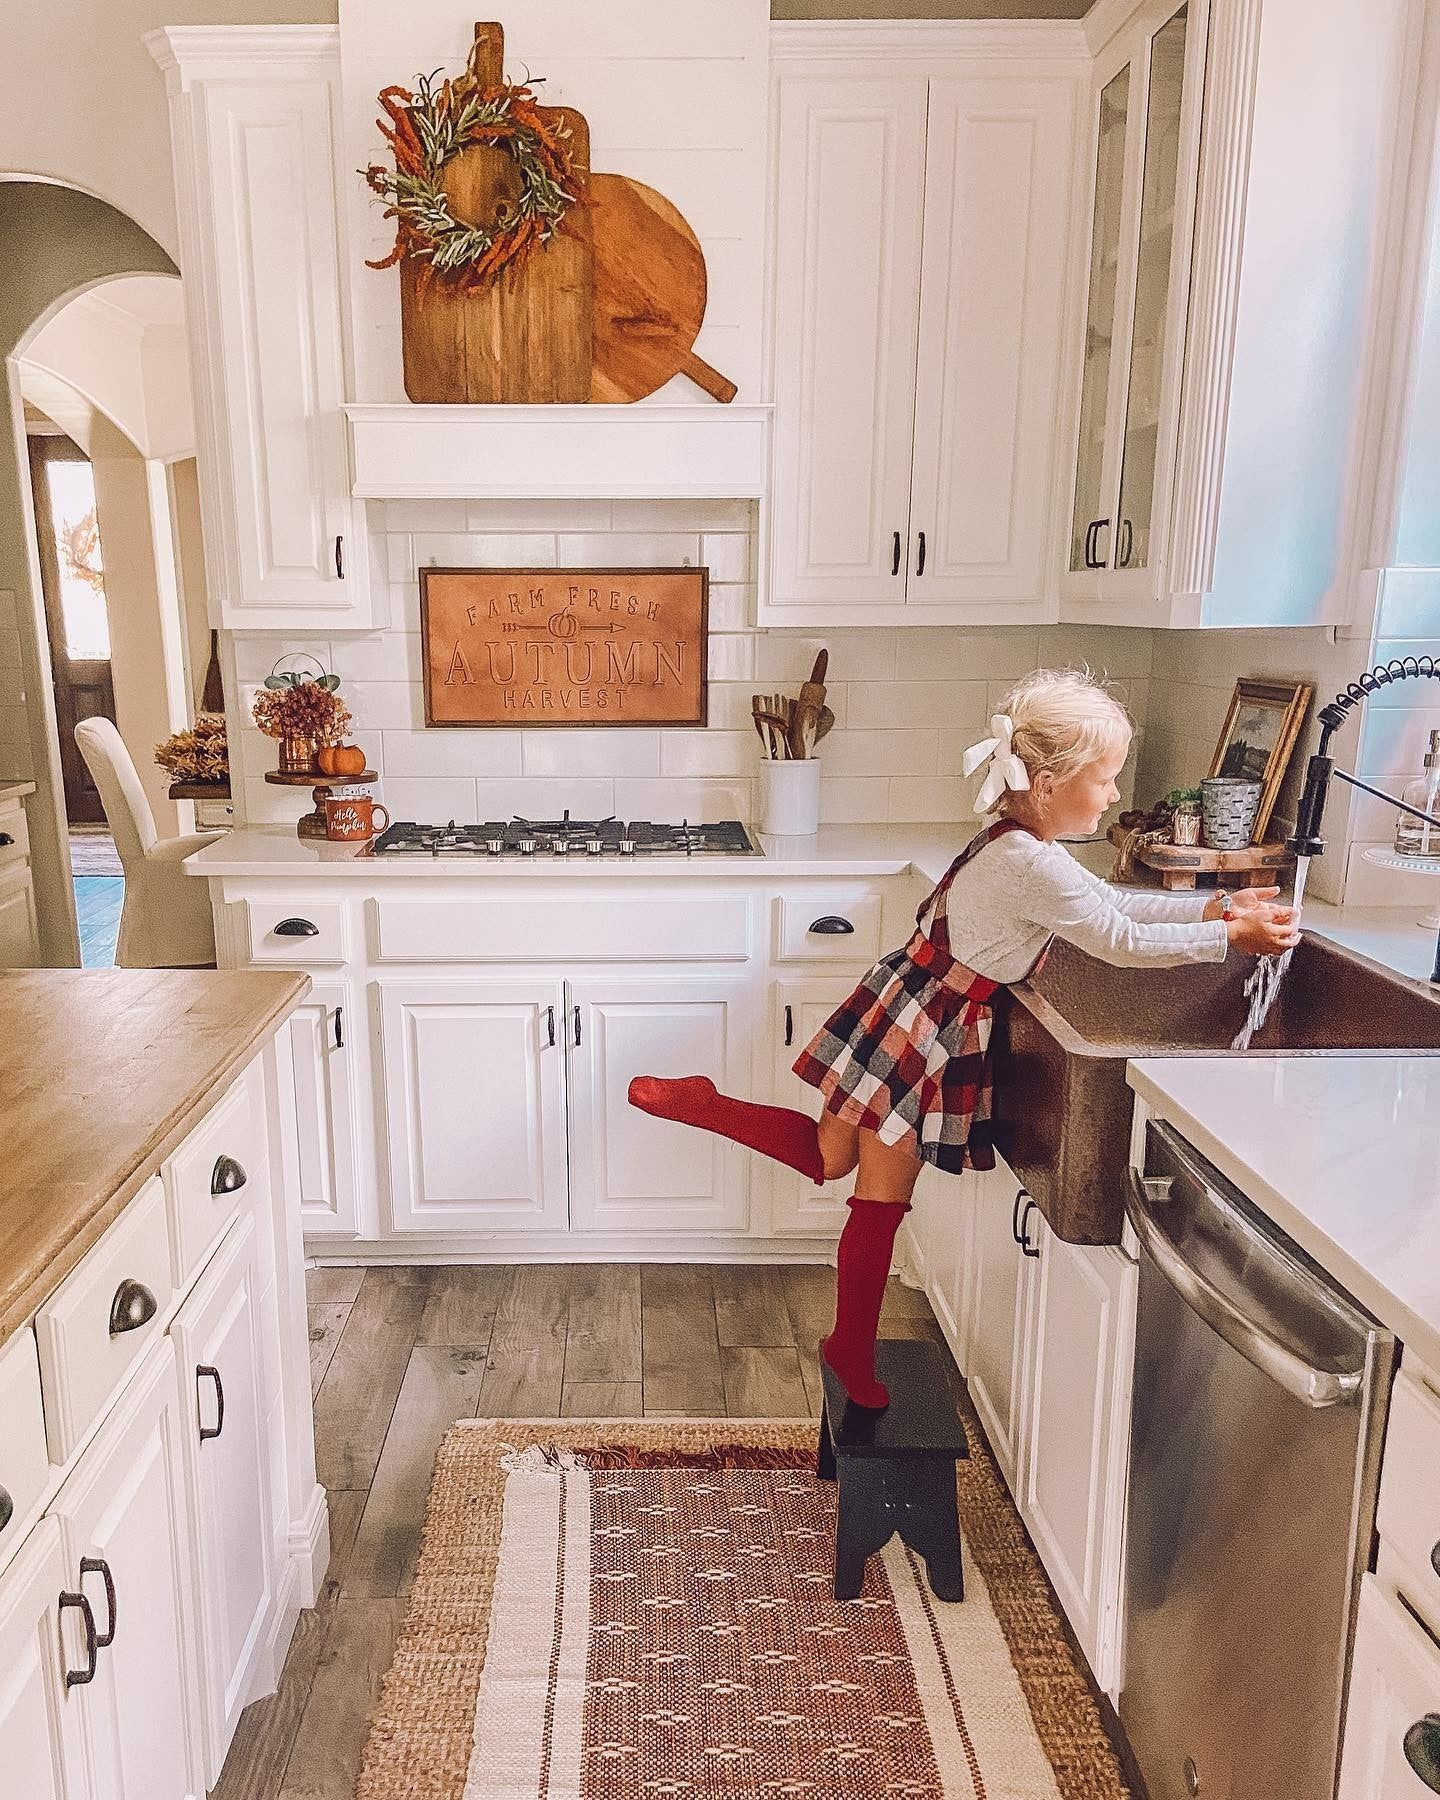 Fall Kitchen Decor Ideas Tap The Image To Shop Orange And Red Fall Decorations Lifebyleanna Fall Kitchen Decor Kirkland Home Decor Fall Kitchen